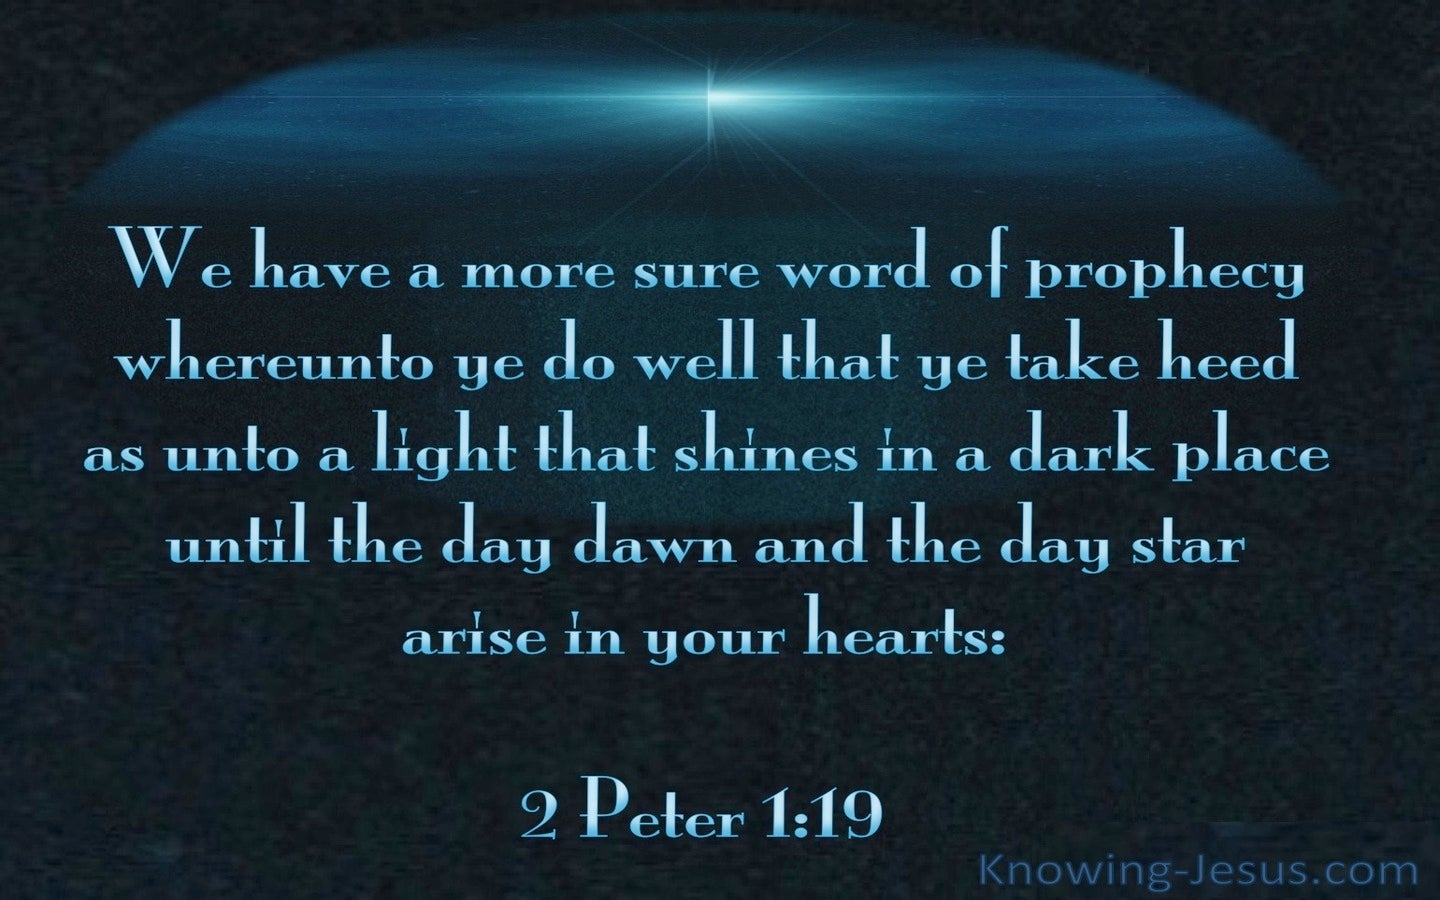 2 Peter 1:19 A More Sure Word of Prophecy (blue)